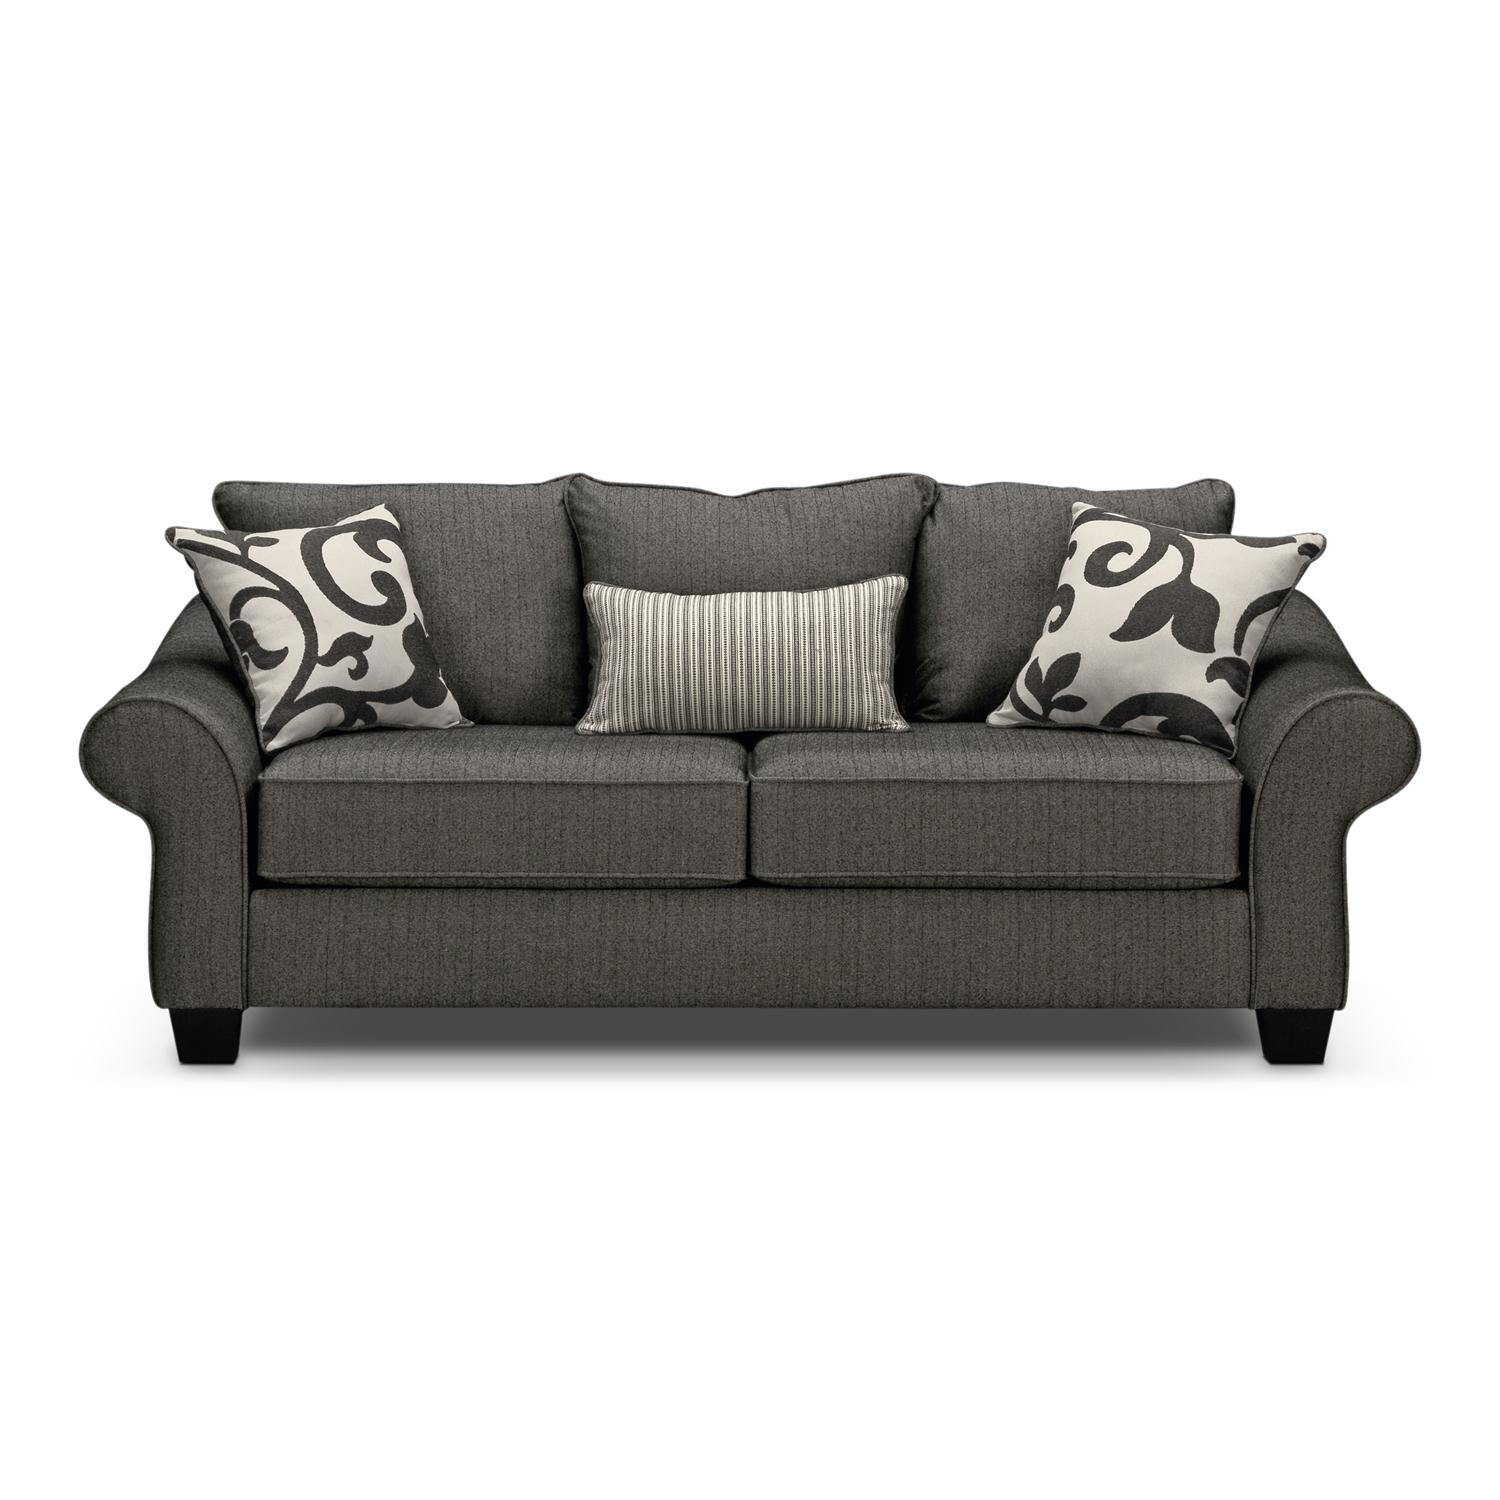 Sofas Center : Value City Furniture Sectional Sleepers Sofa Sale Regarding Value City Sofas (View 8 of 20)